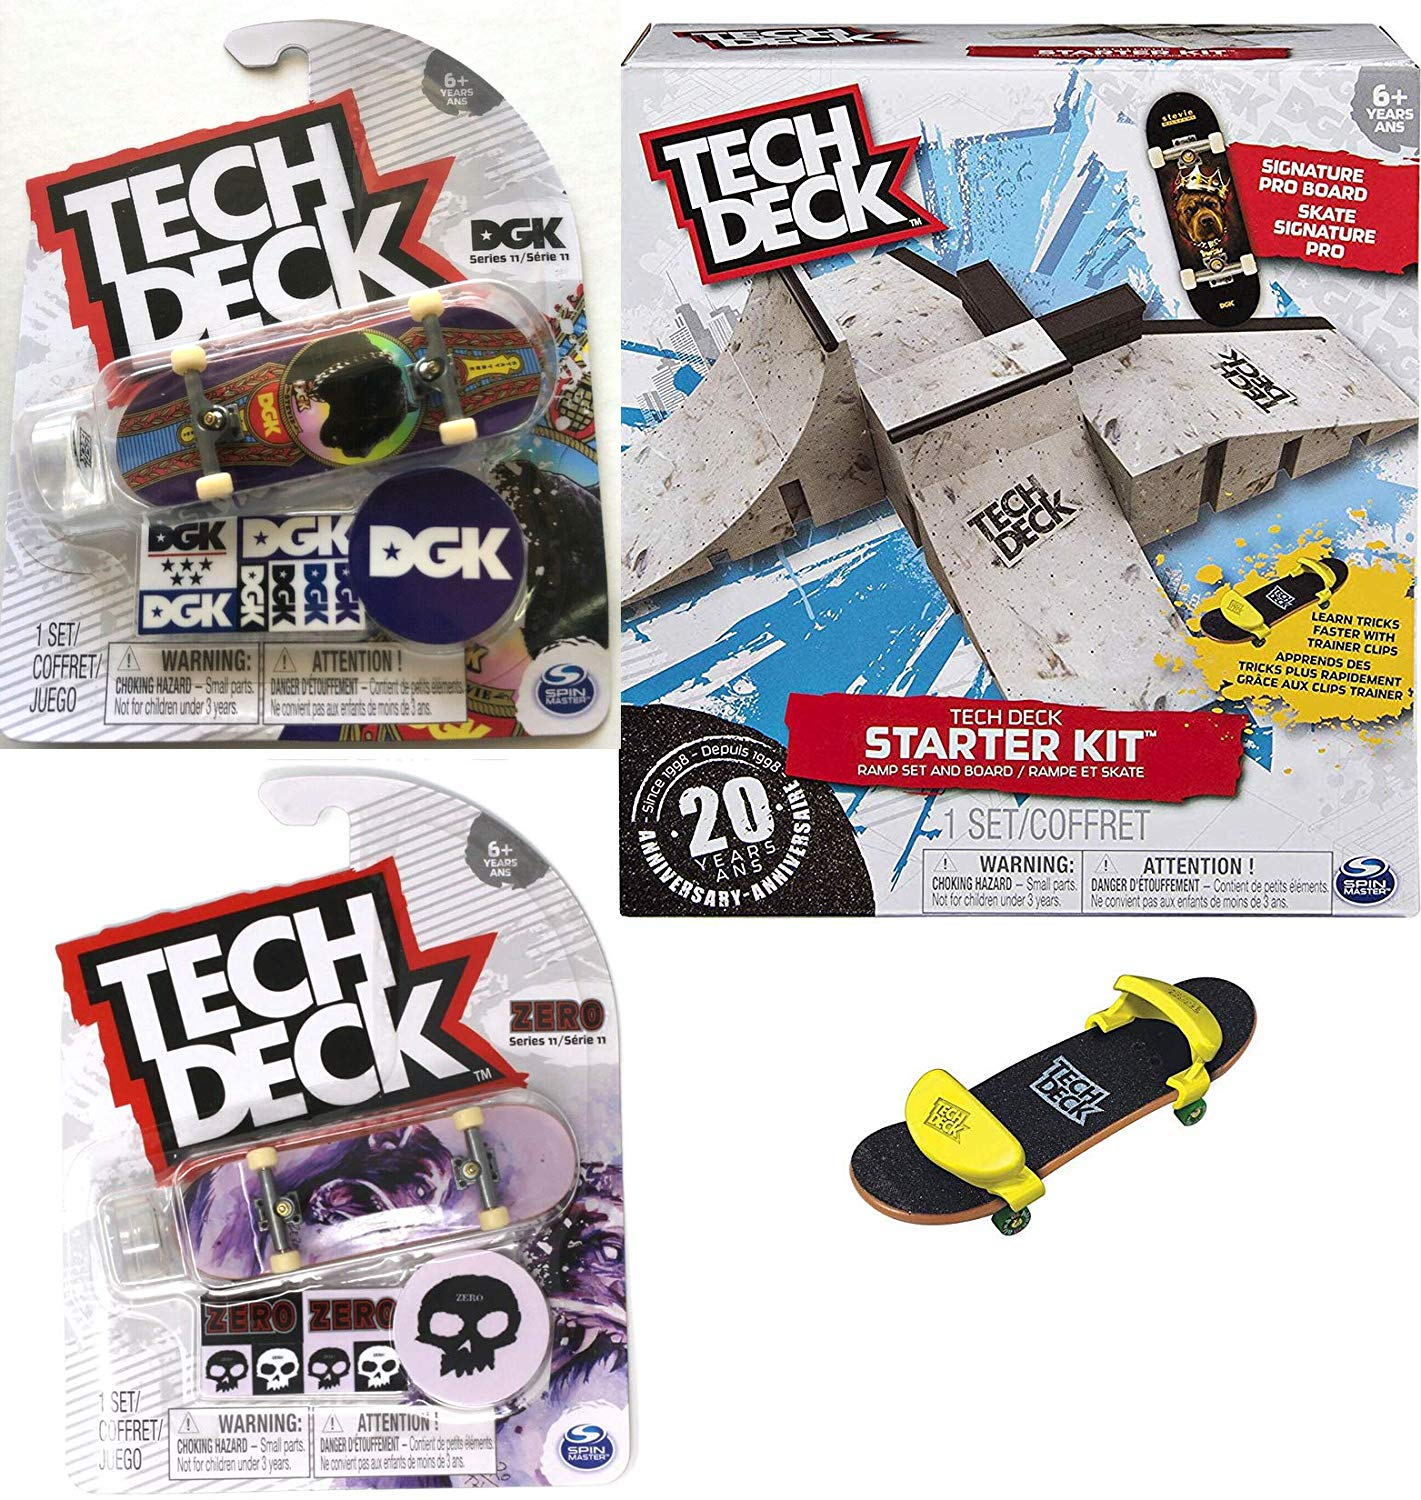 TECH DECK Ramps Series Board Set Skateboard Stunt Fingerboard Pack Bundled with Rare Graphics + Logo & Rad Skater Decals Designs 3 Items by TECH DECK